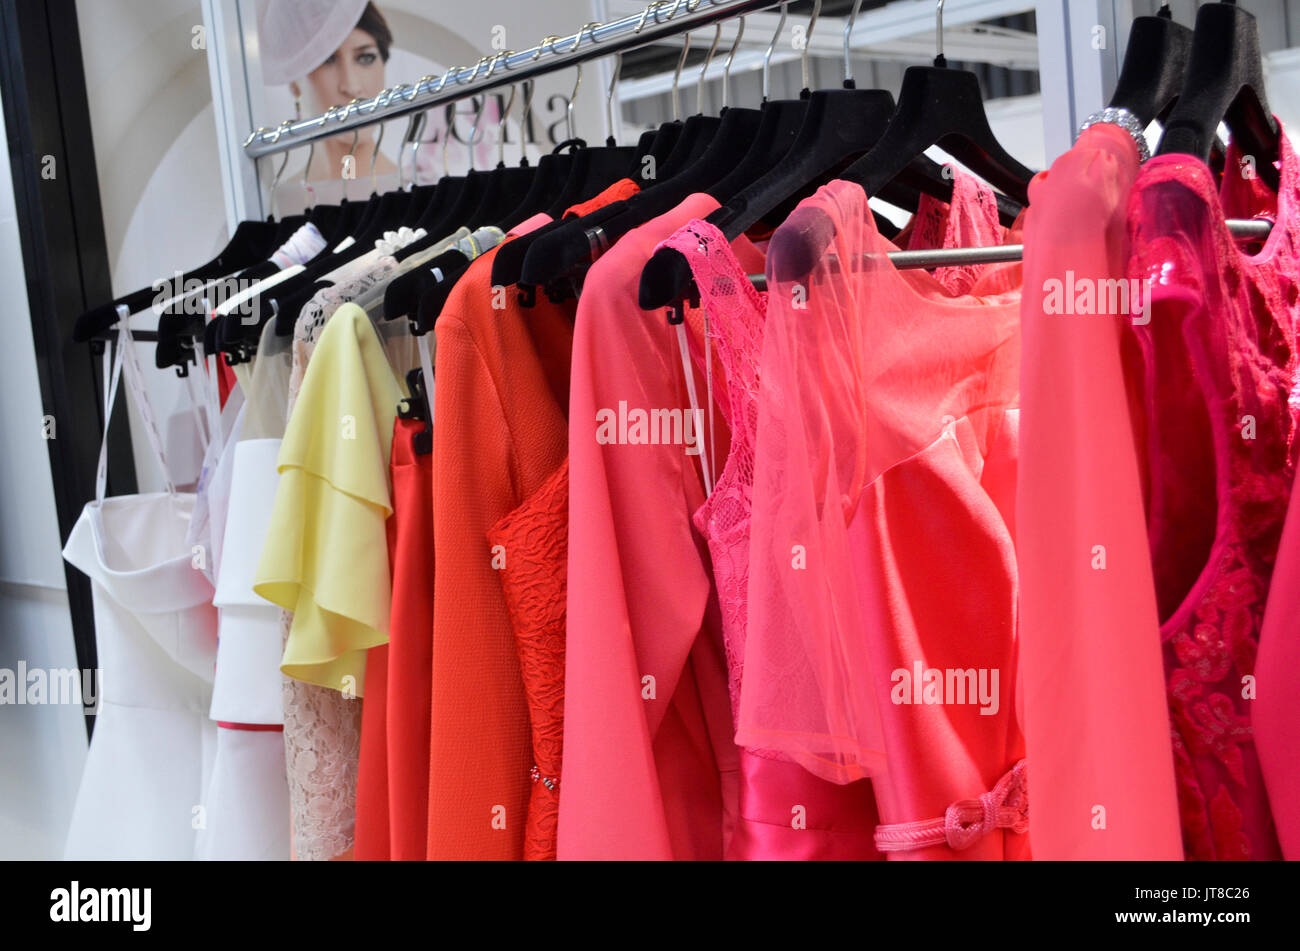 Clothes rail display at Moda. Moda, Britain's largest trade exhibition for fashion buyers, runs between 6th-8th August 2017 at the NEC, Birmingham, UK. Credit: Antony Nettle/Alamy Live News - Stock Image